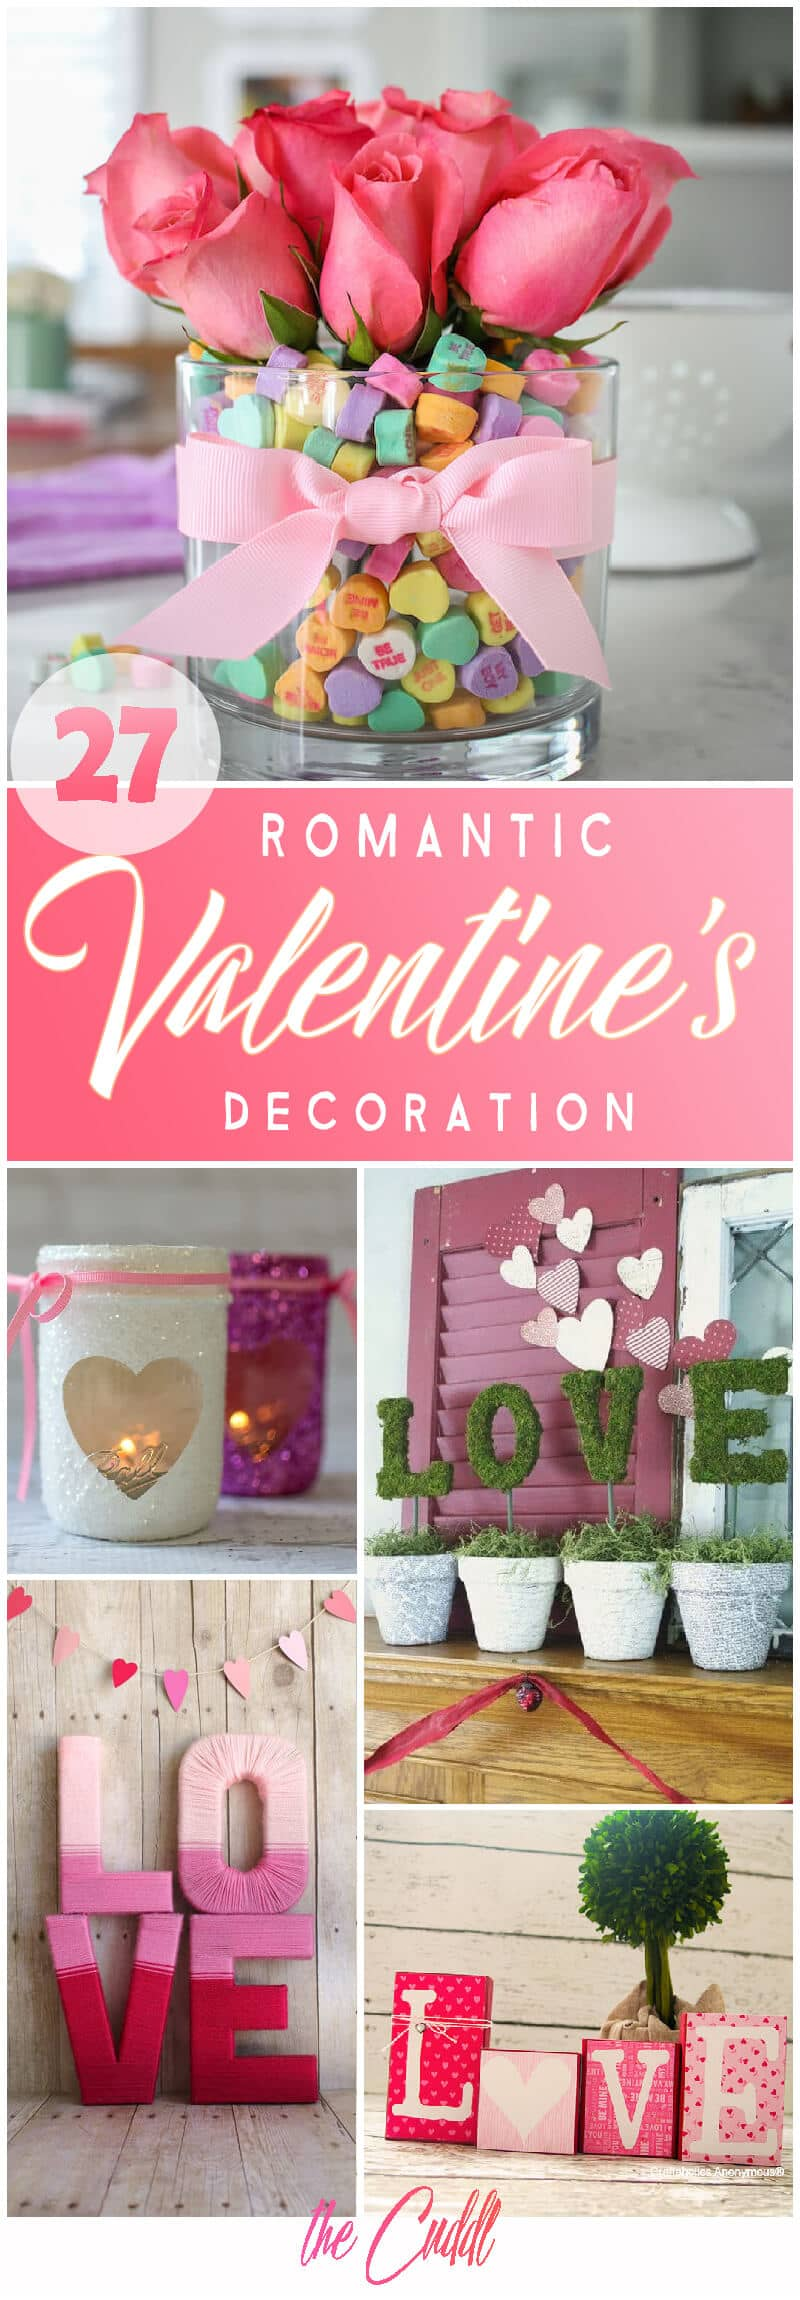 27 Playful Valentine's Day Decoration Ideas That Will Fill Your Home With Love